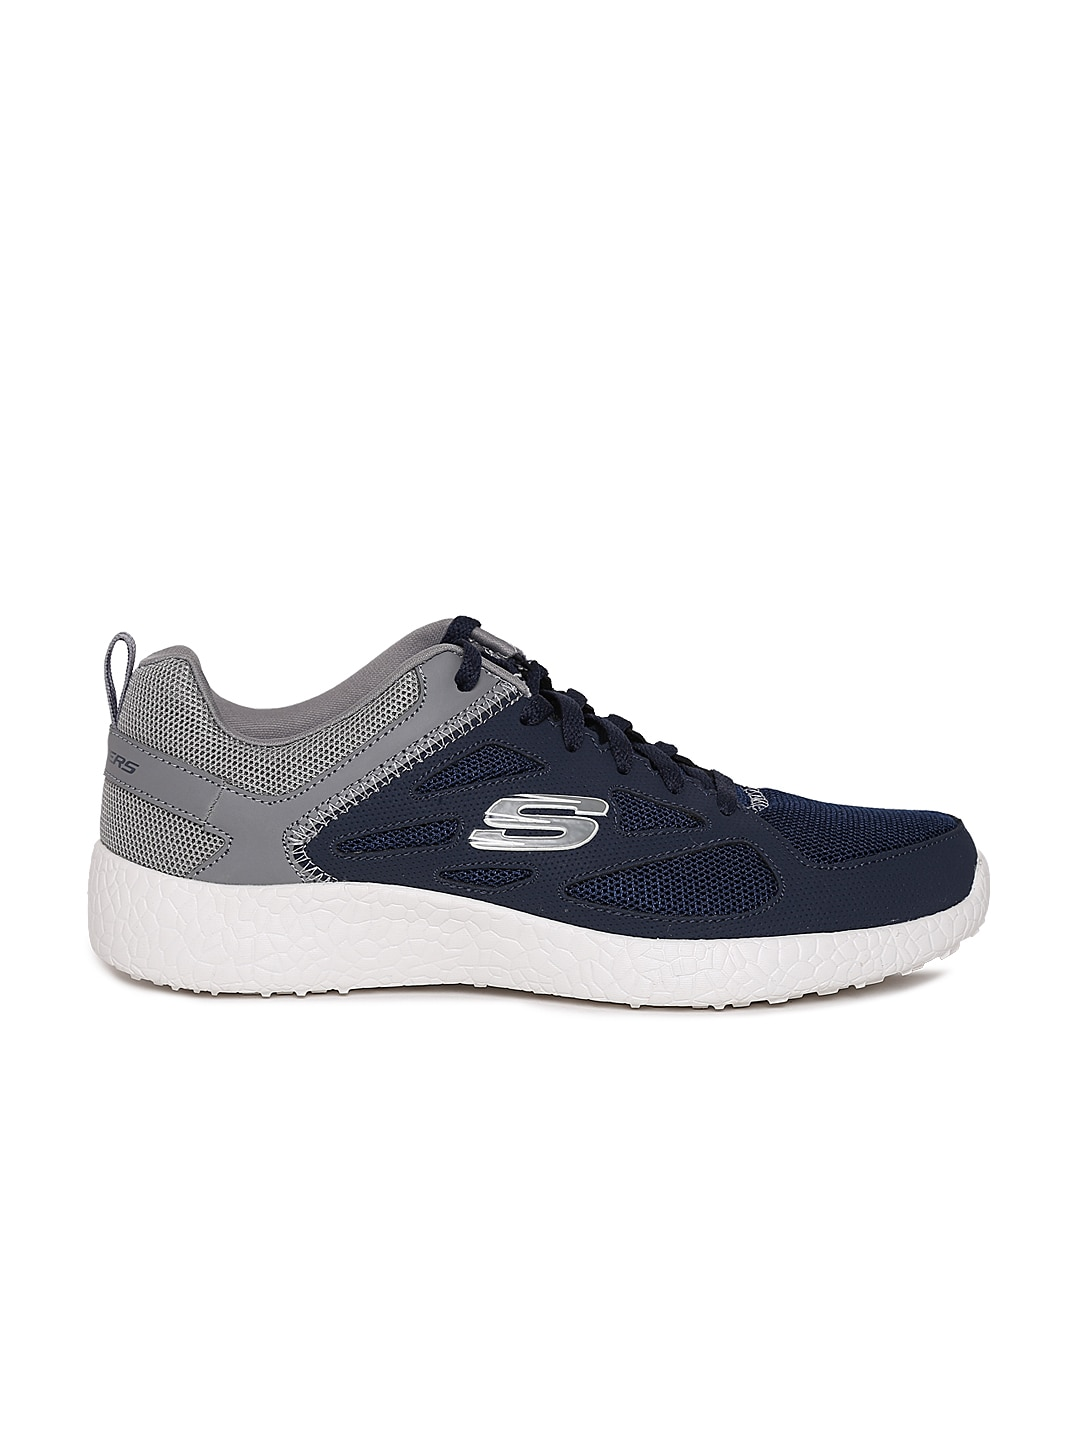 984002d8ca0 Buy skechers navy blue shoes   OFF71% Discounted